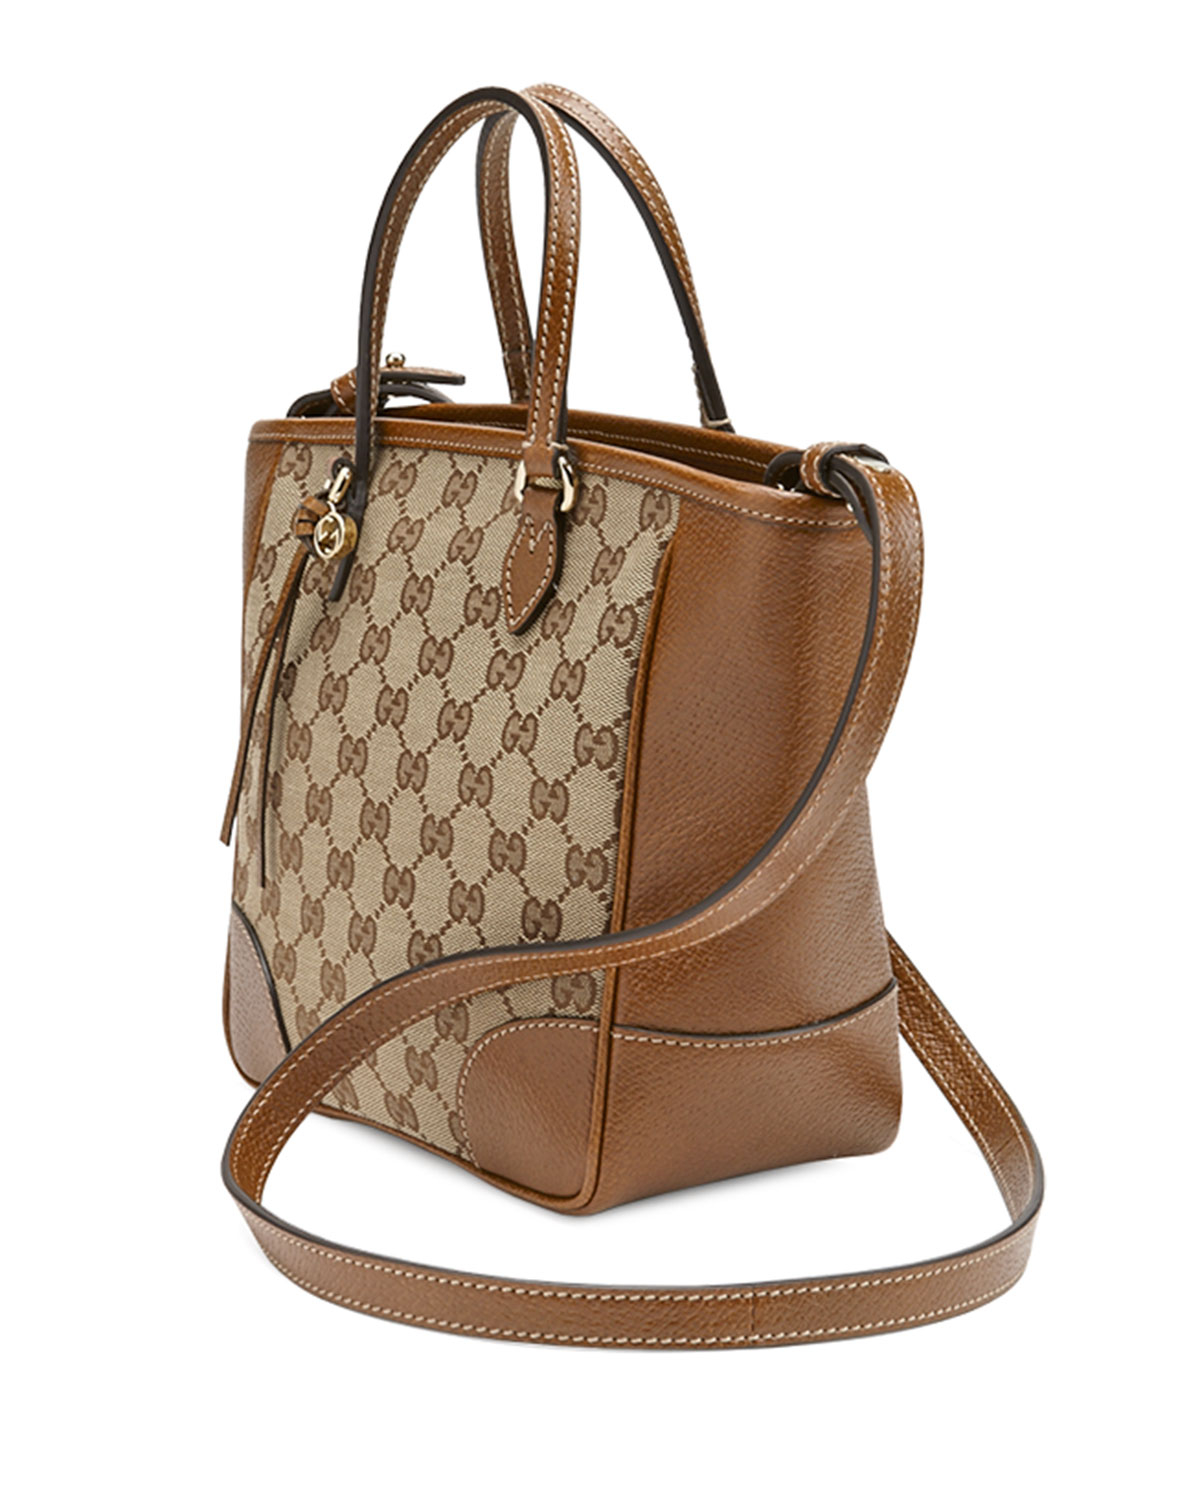 09bb5a79a03f Gucci Bree Small Gg Canvas Tote Bag in Brown - Lyst